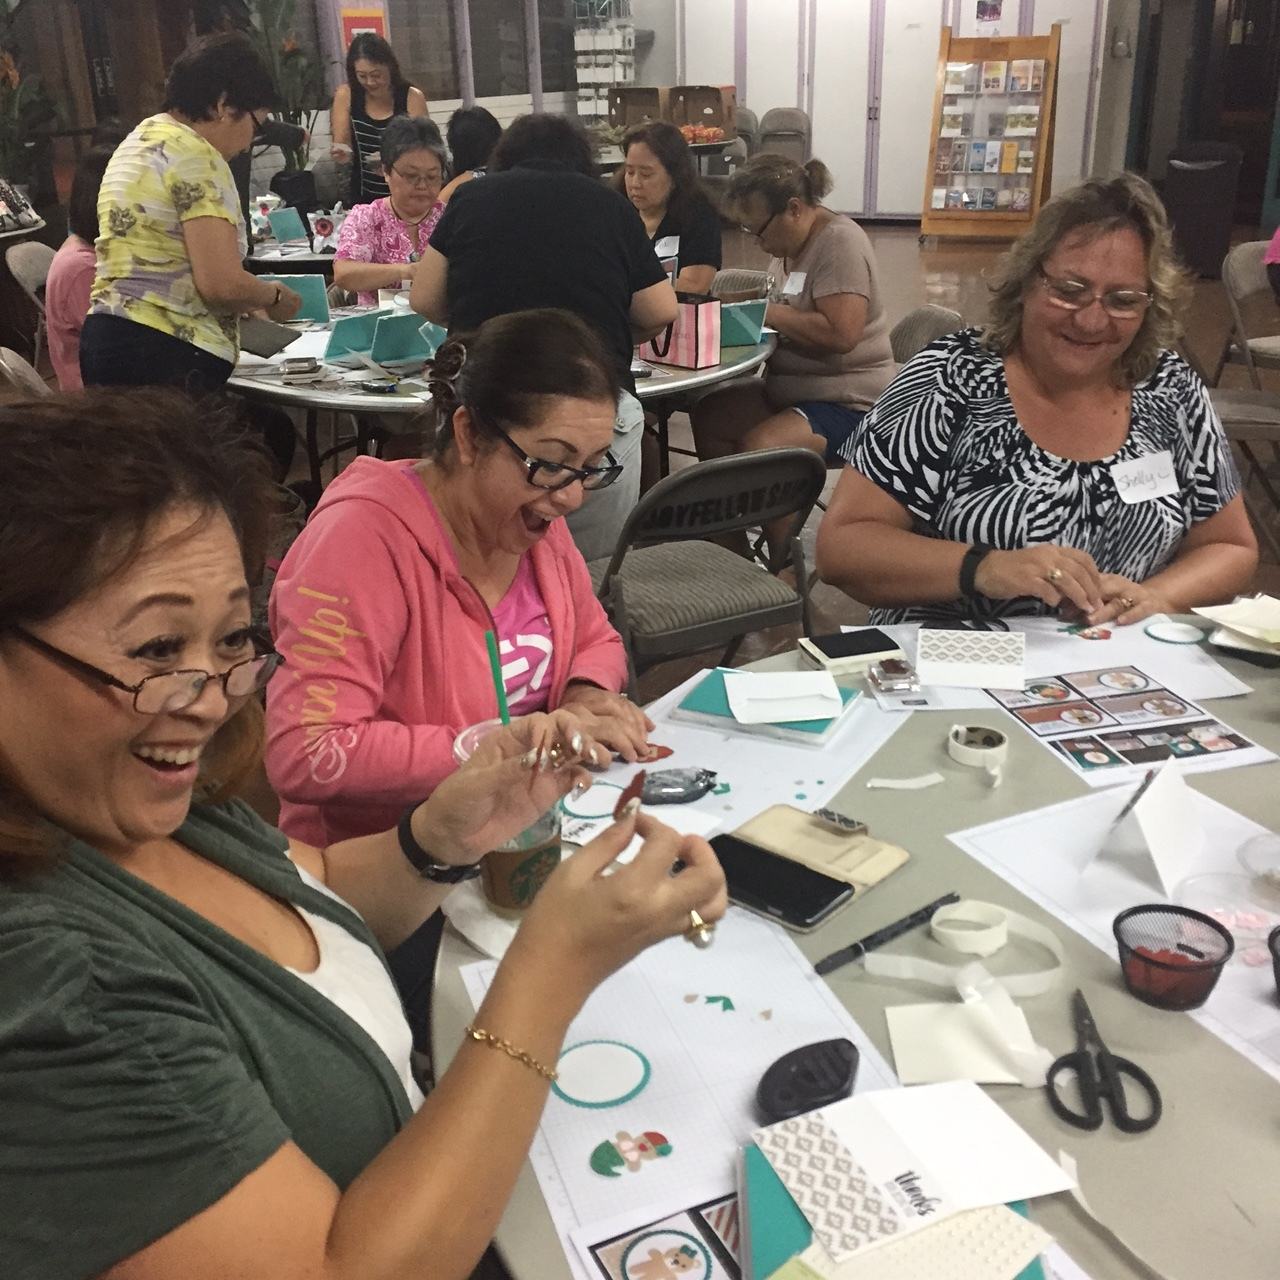 Stamping at Inspiration Night - www.stampedwithaloha.com